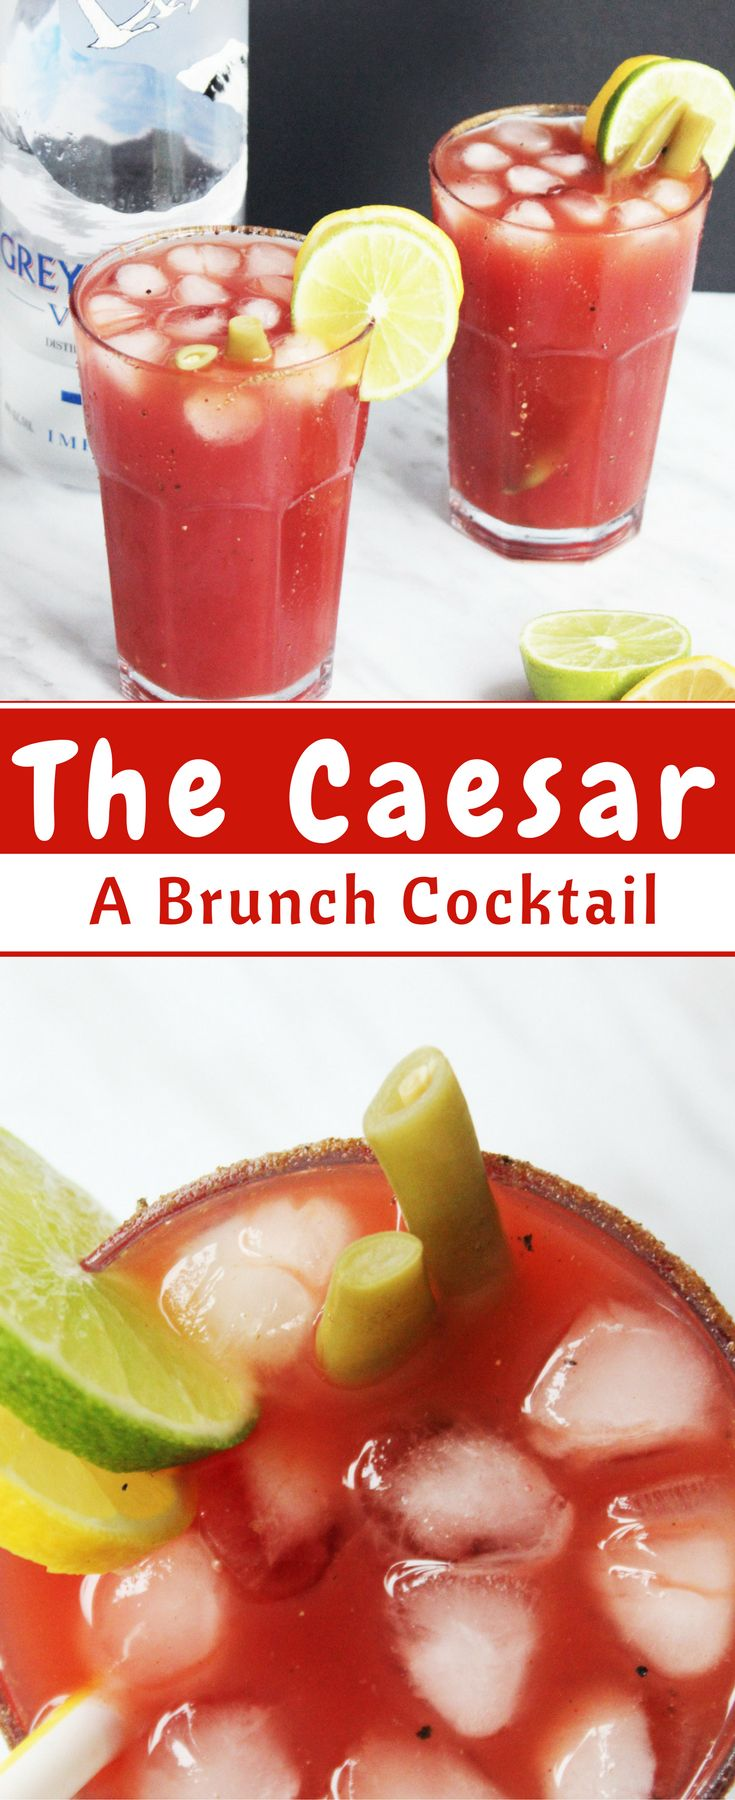 The Caesar drink is a classic Canadian brunch cocktail, made  with vodka, clamato juice and various spices.  Highly regarded as a hangover cure, this is Canada's best kept secret!  Caesar cocktail | bloody mary | brunch cocktail | easy cocktail | vodka cocktail | spicy cocktail via @Slow The Cook Down